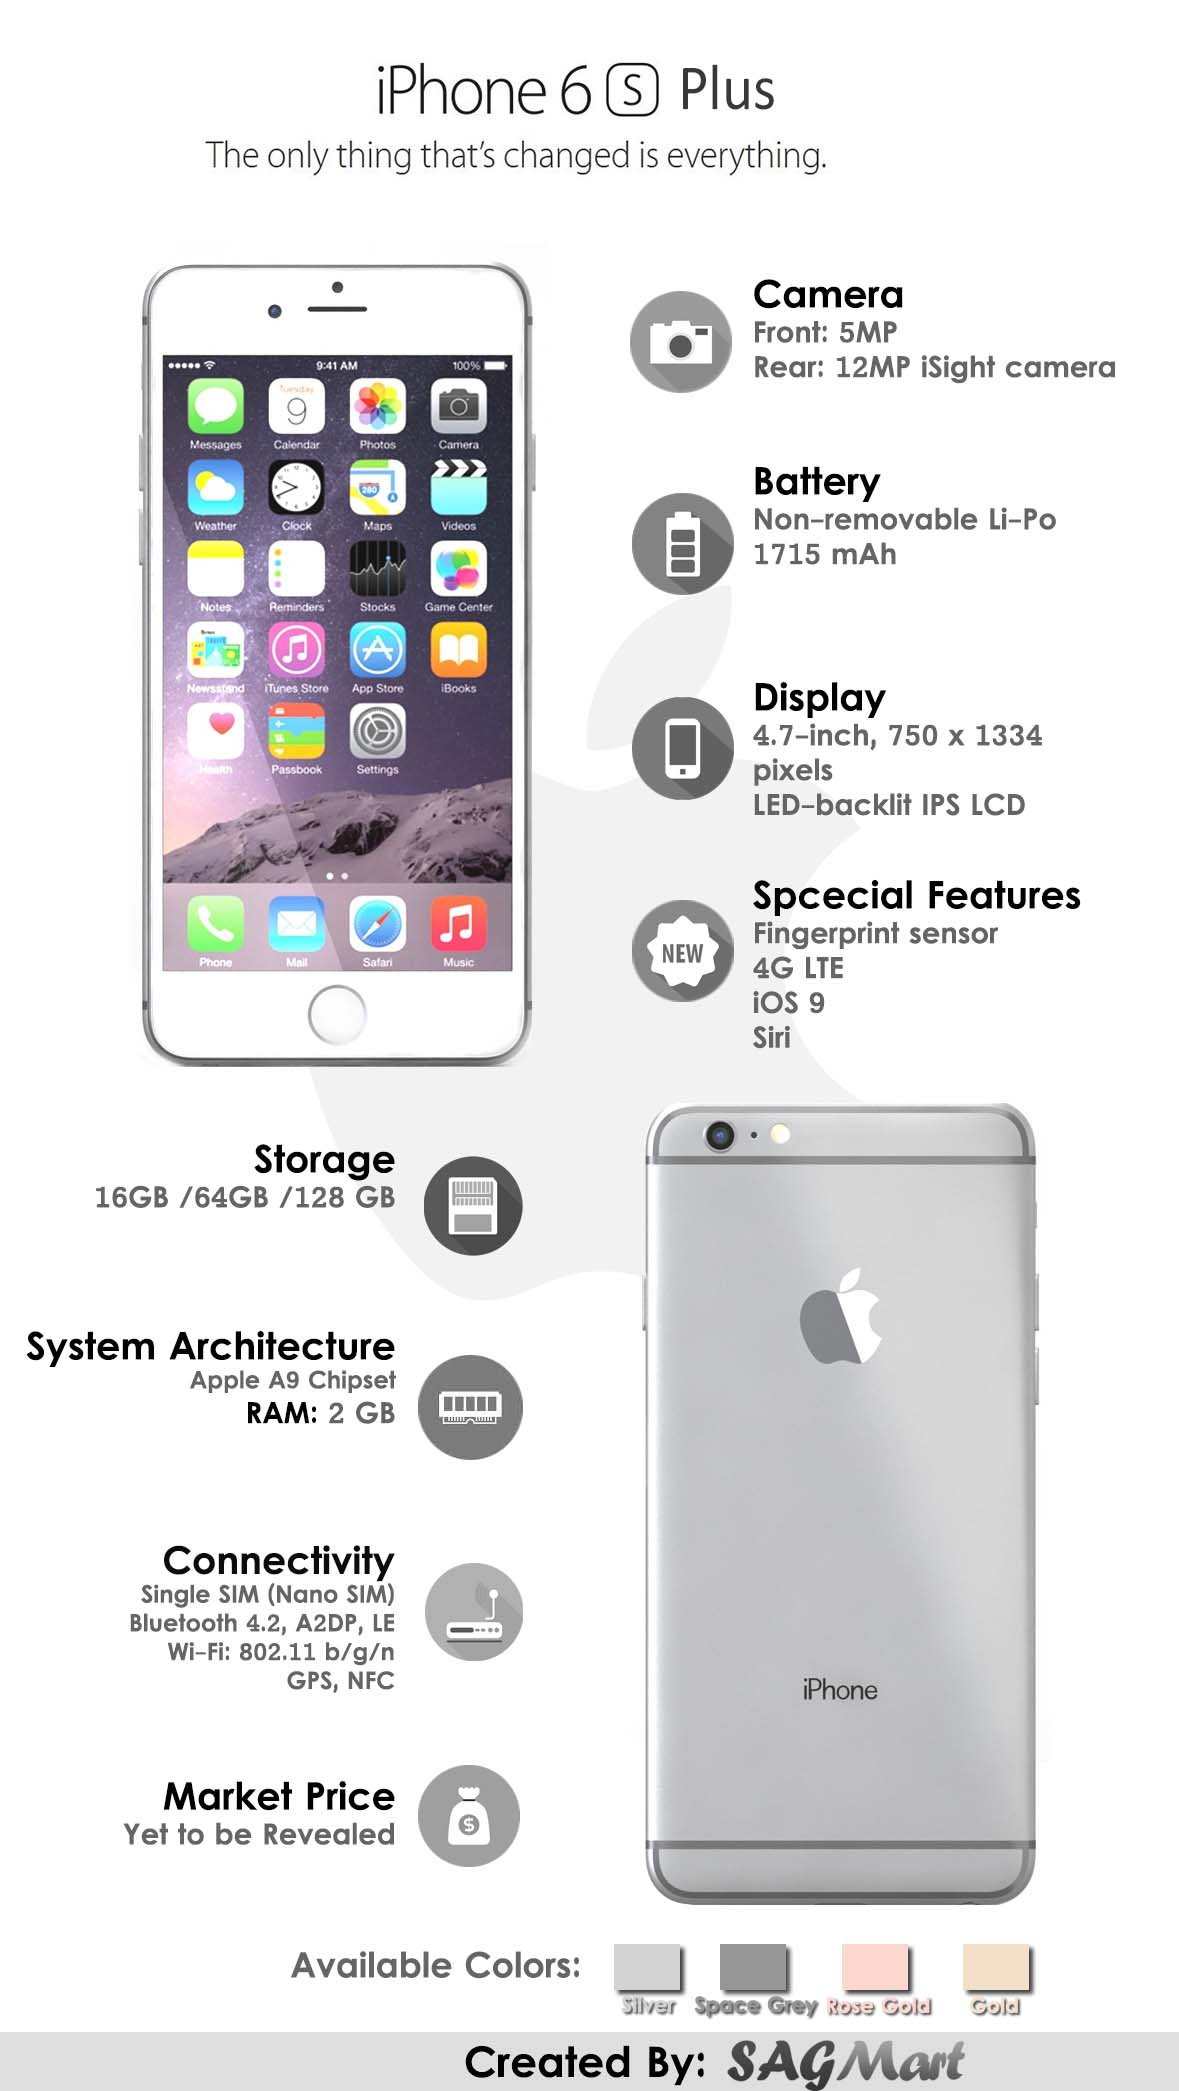 iphone 6s plus specs iphone 6s plus specifications infographic sagmart 1548